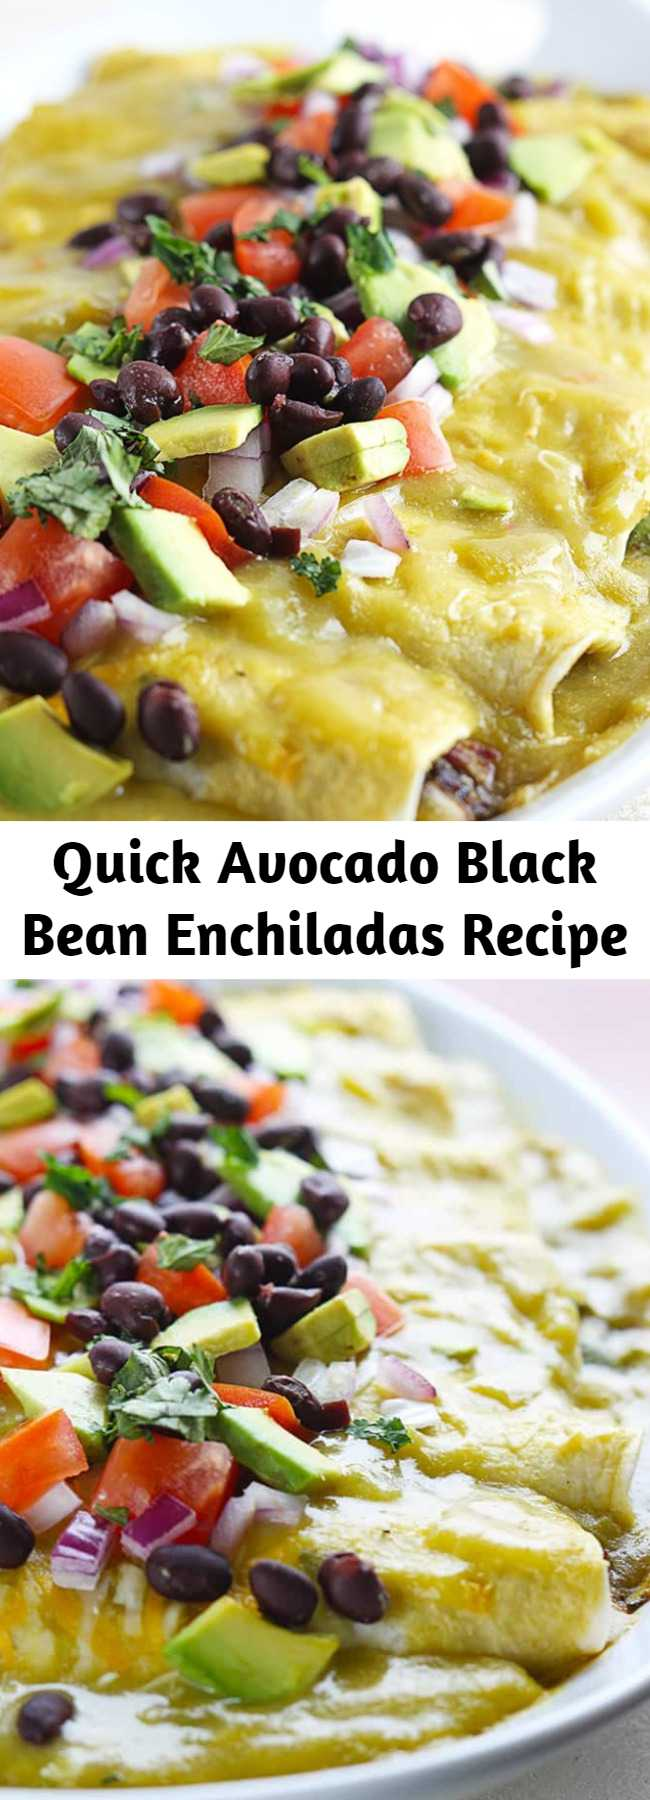 Quick Avocado Black Bean Enchiladas Recipe - Healthy and tasty enchiladas filled with seasoned black beans and creamy avocado slices, all covered in green chile enchilada sauce! Ready in 30 minutes!